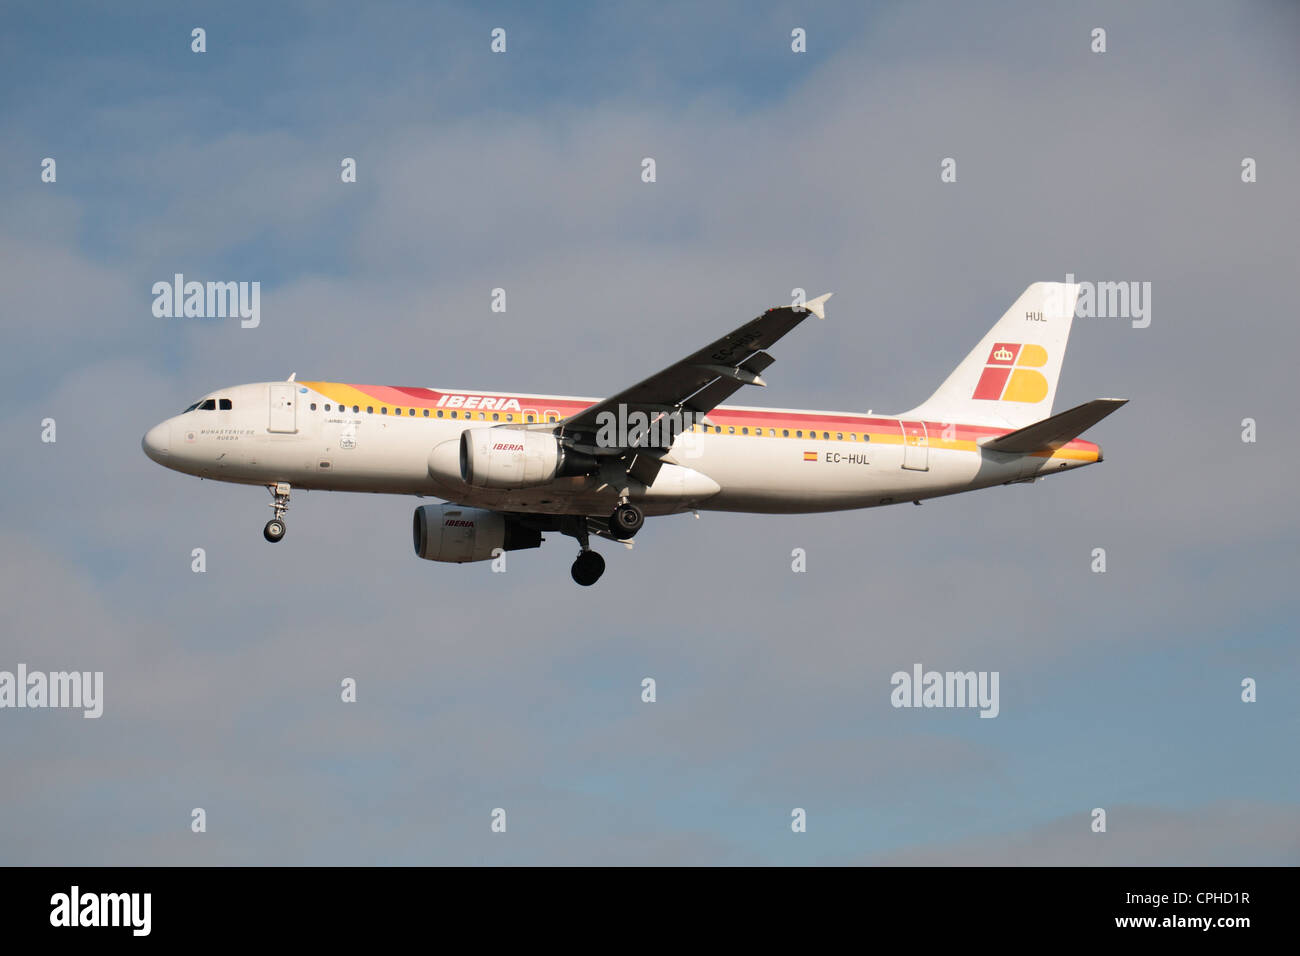 An Iberia Airbus A320-214 (EC-HUL ) about to land at Heathrow Airport, London, UK. - Stock Image